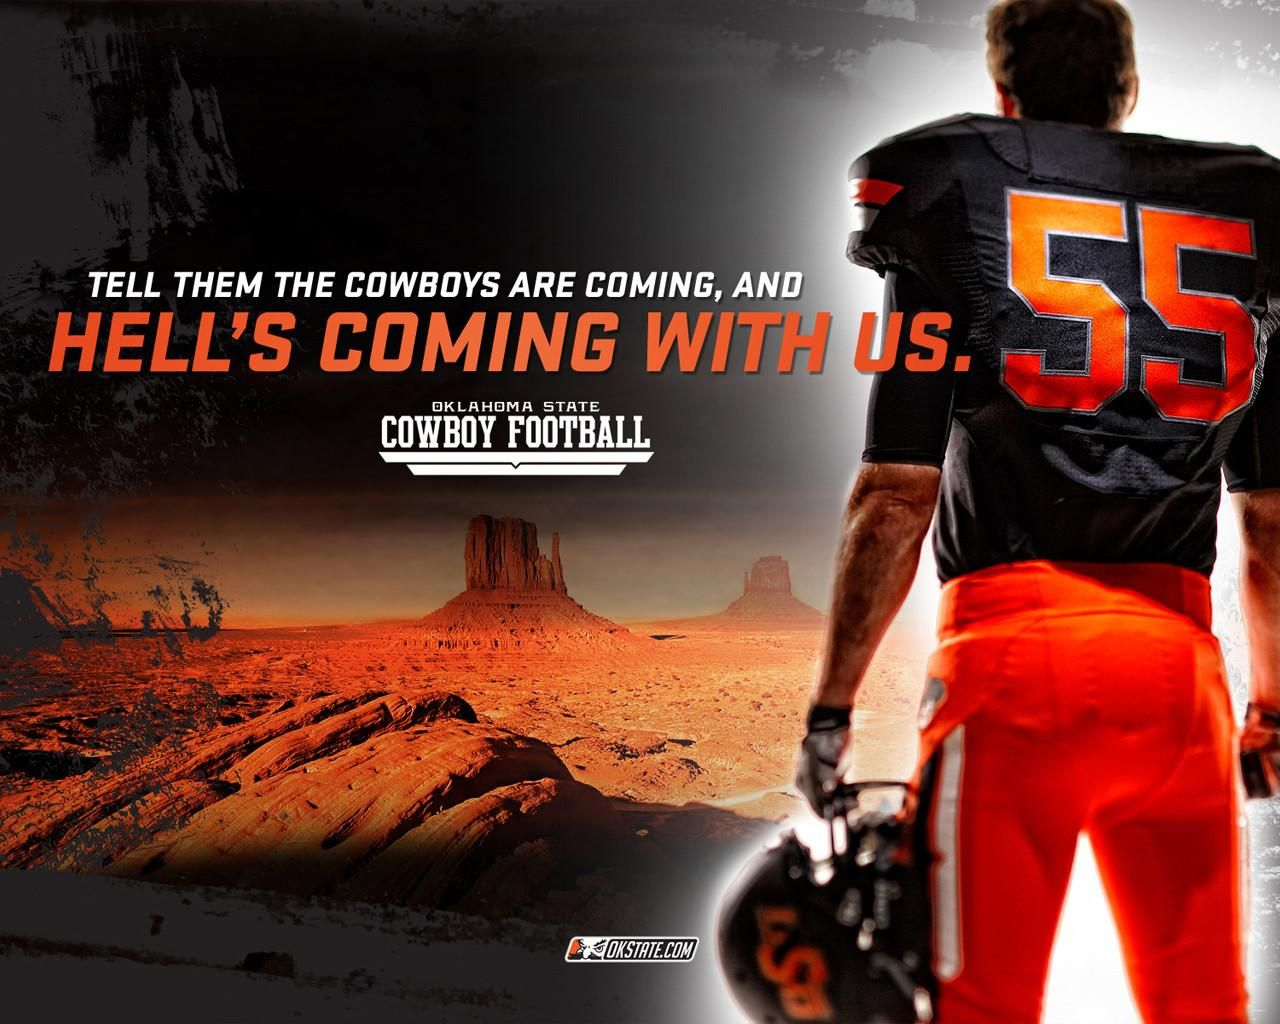 Oklahoma State Cowboys Wallpaper Oklahoma State University